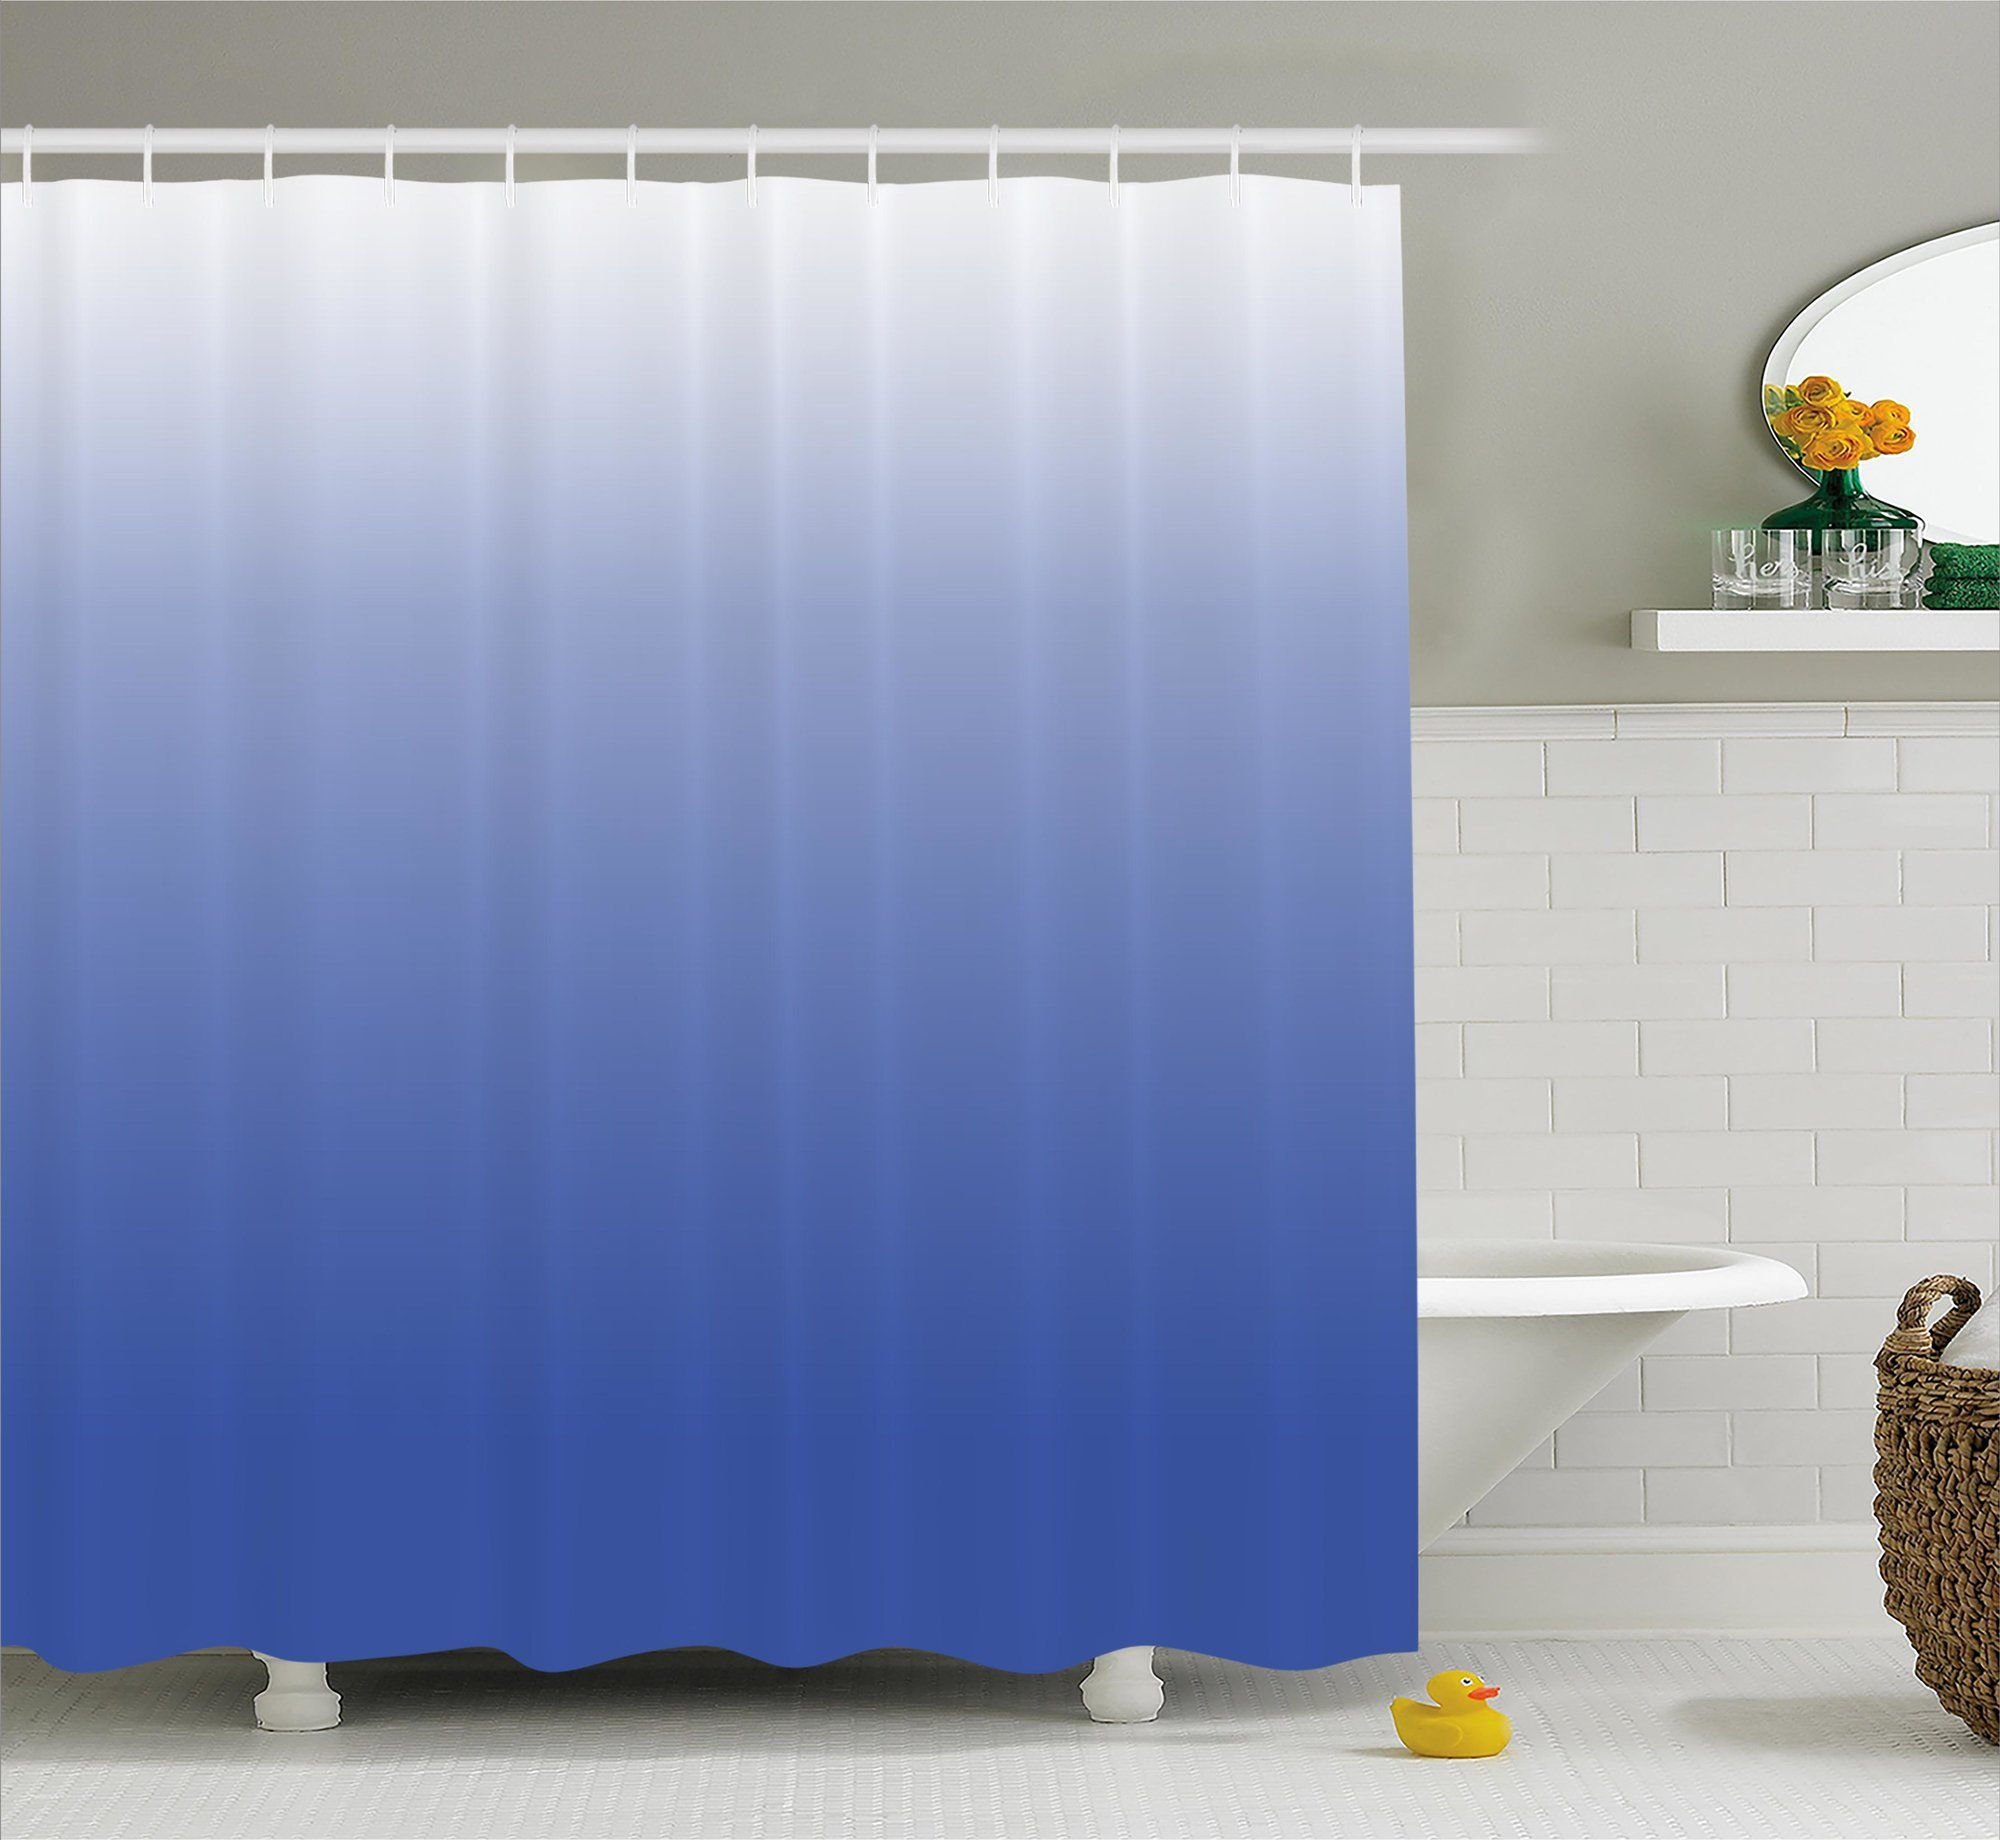 Inspired mysterious ocean design shower curtain mysterious ocean